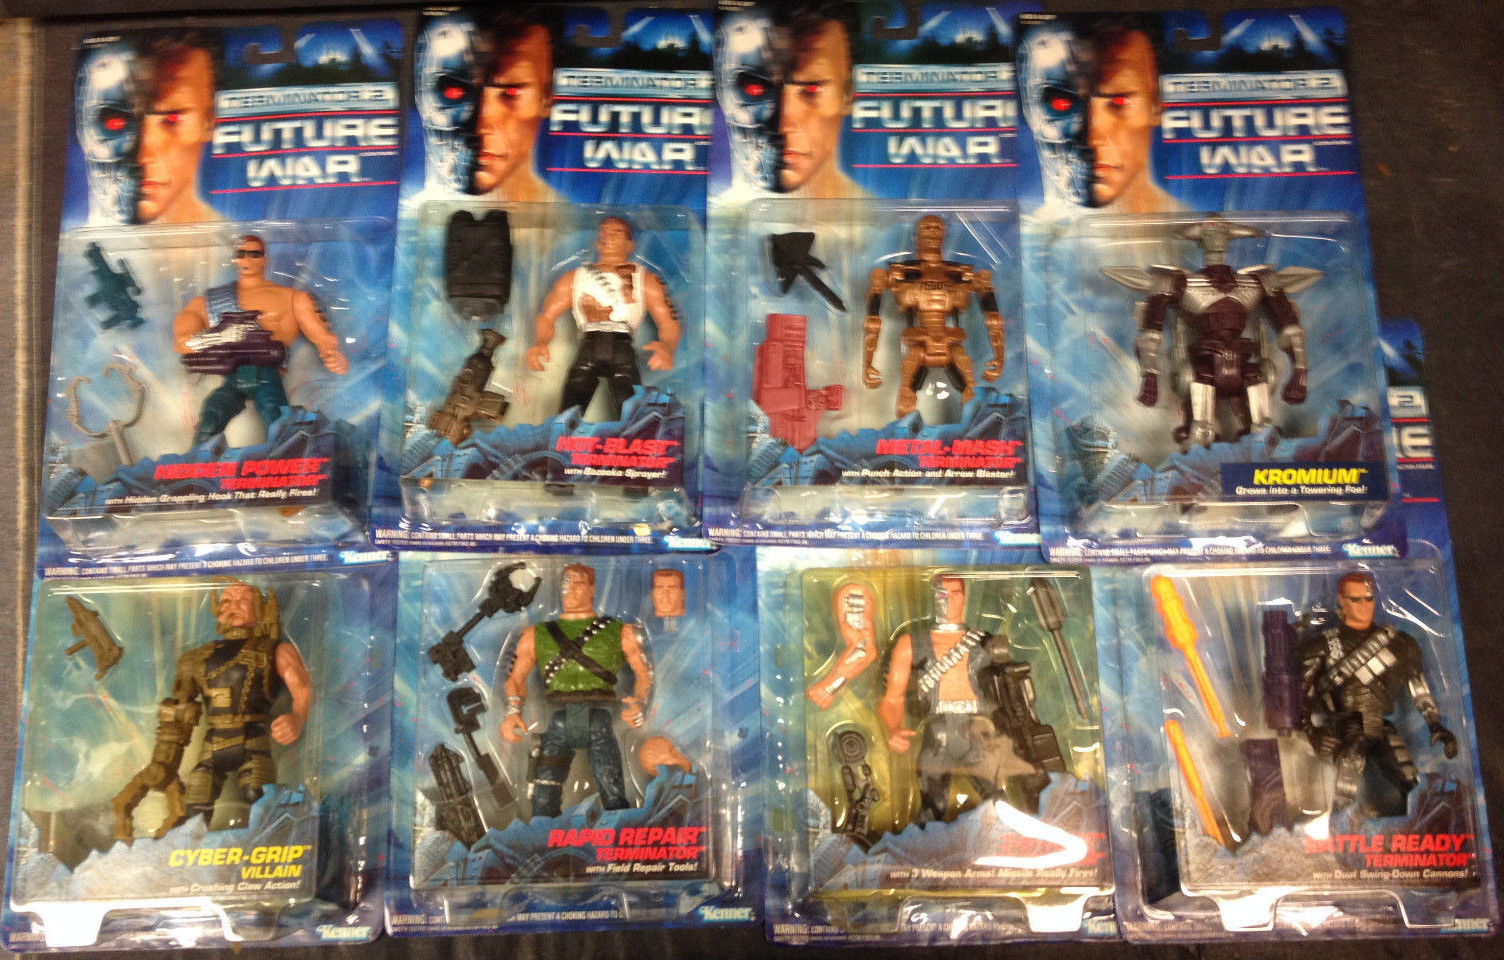 terminator-2-future-war-8-action-figure-set-lot-kenner-arnold-schwarzenegger-9bf145d30703eb046fb8268e96469a89.jpg